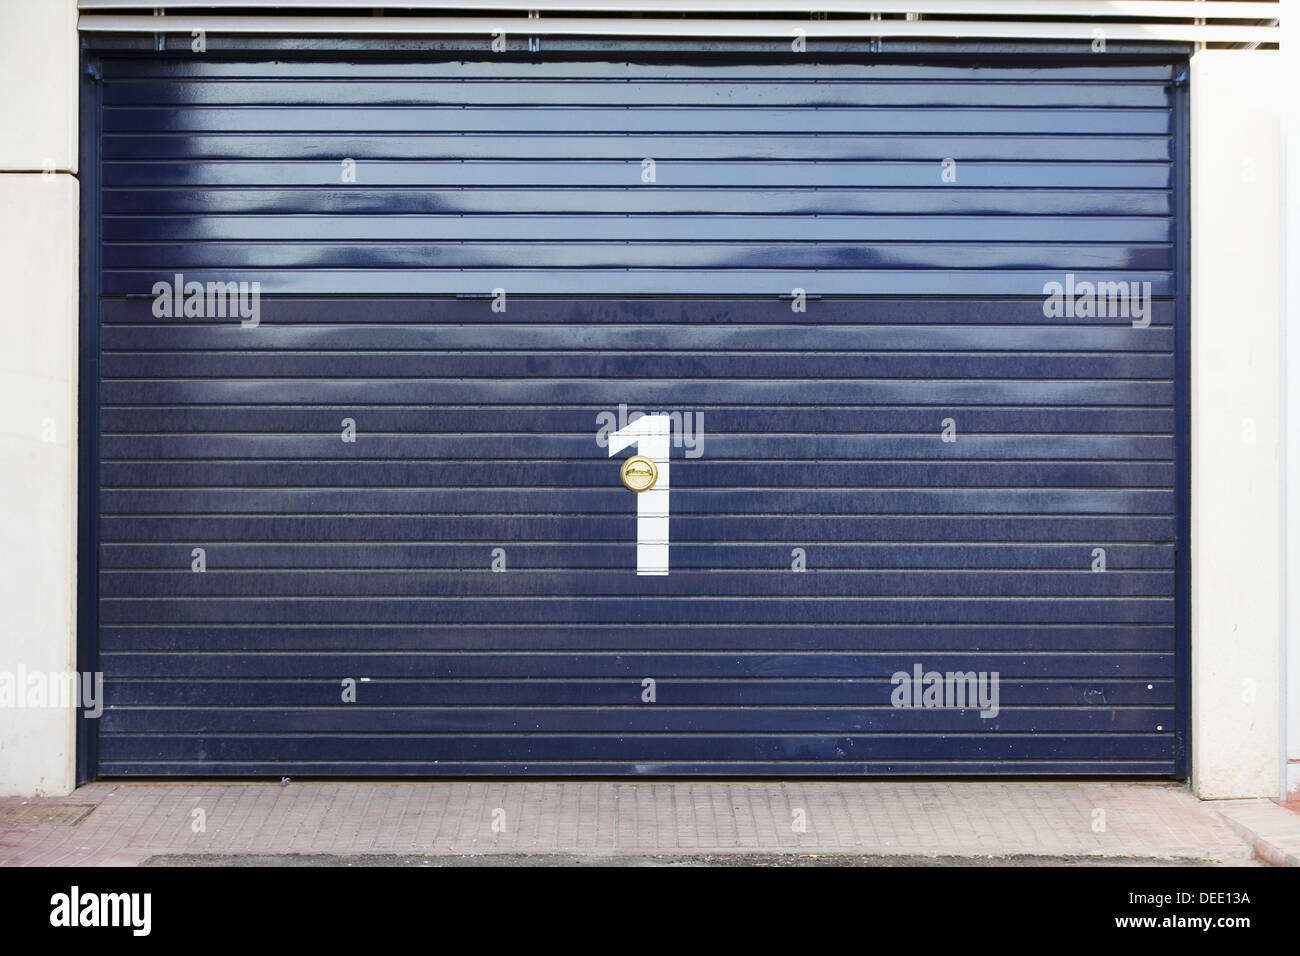 Door Number 1 - Stock Image